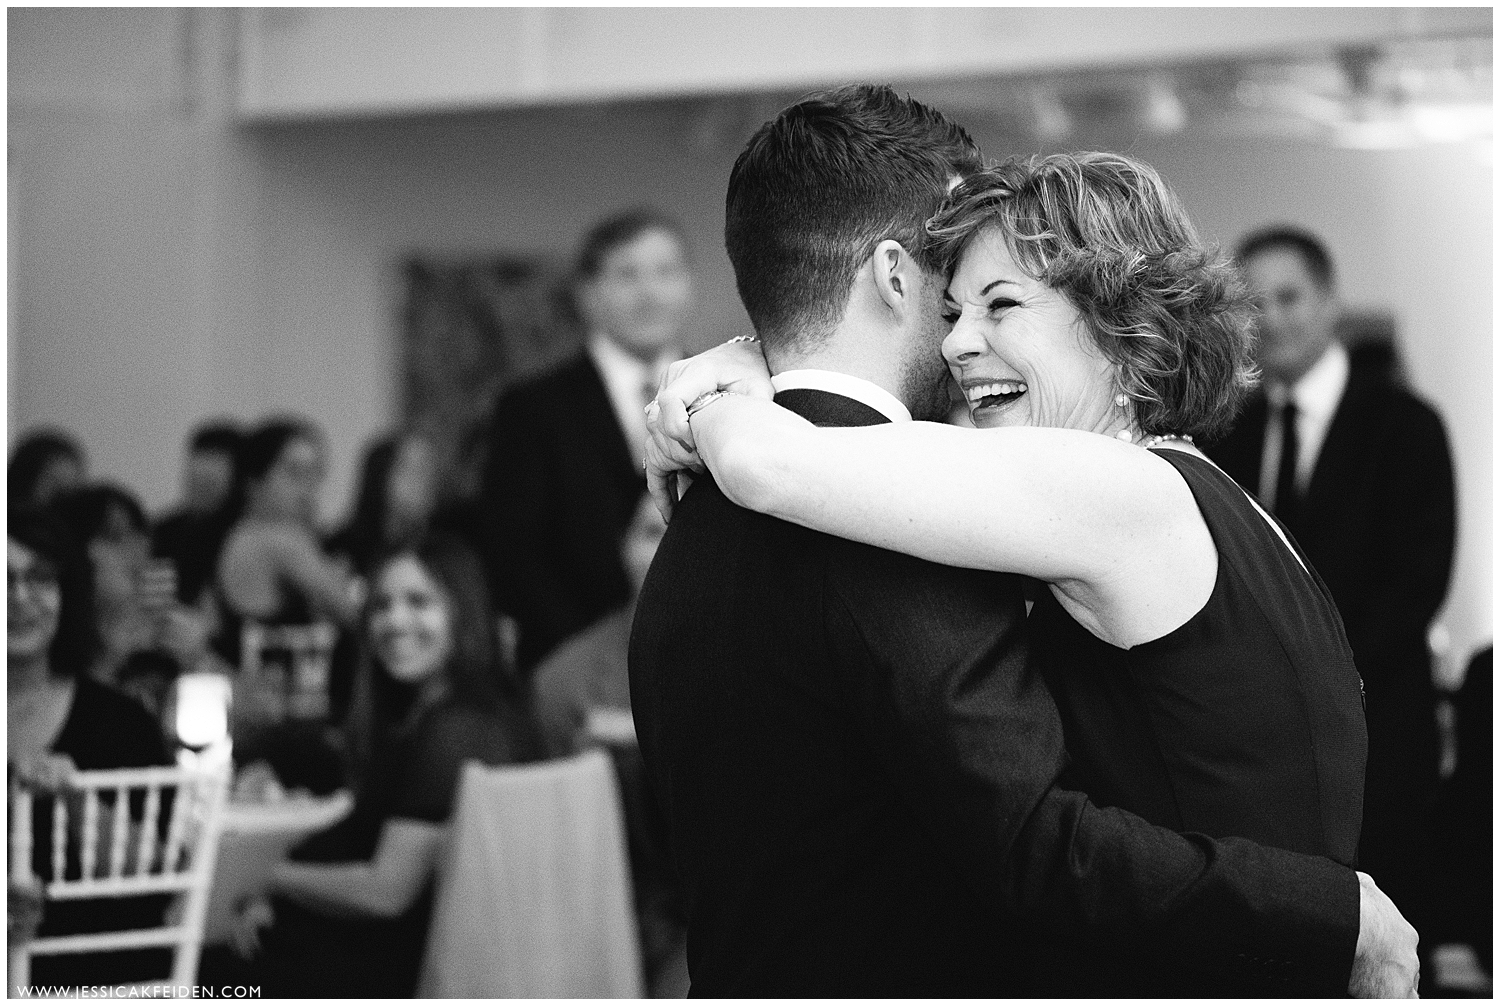 Jessica K Feiden Photography_Artist for Humanity Wedding Boston Photographer_0058.jpg